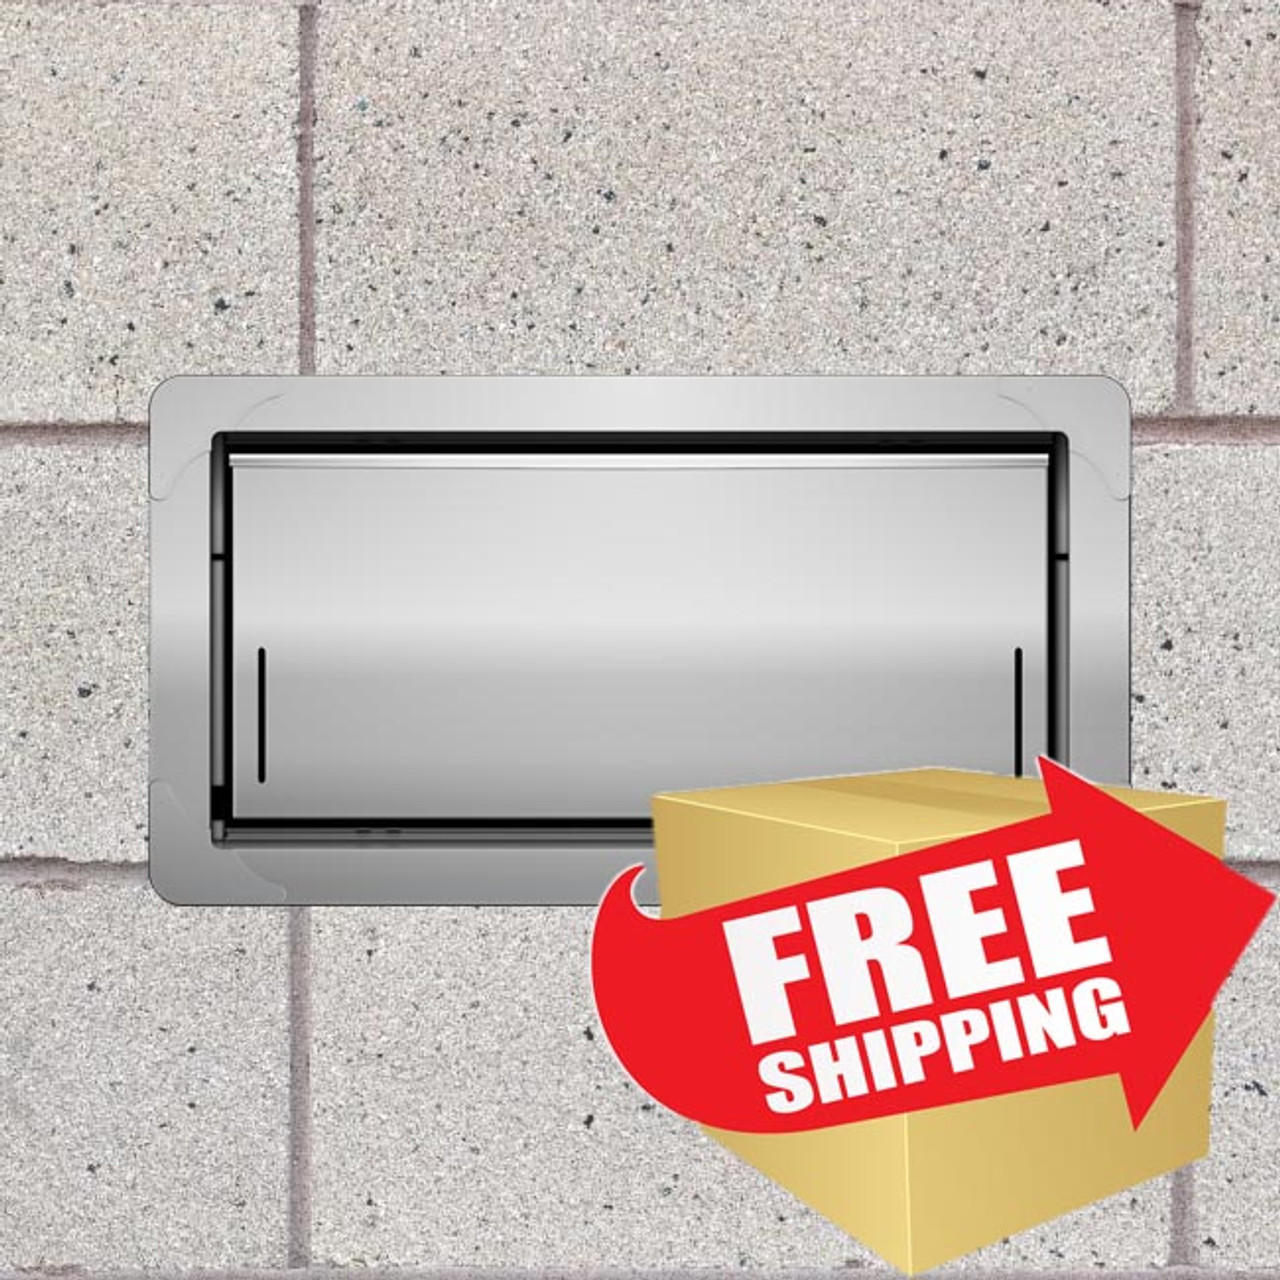 Smart Vent 1540-520 Insulated Flood Vent, Stainless Steel - IN-STOCK, SHIPS FREE